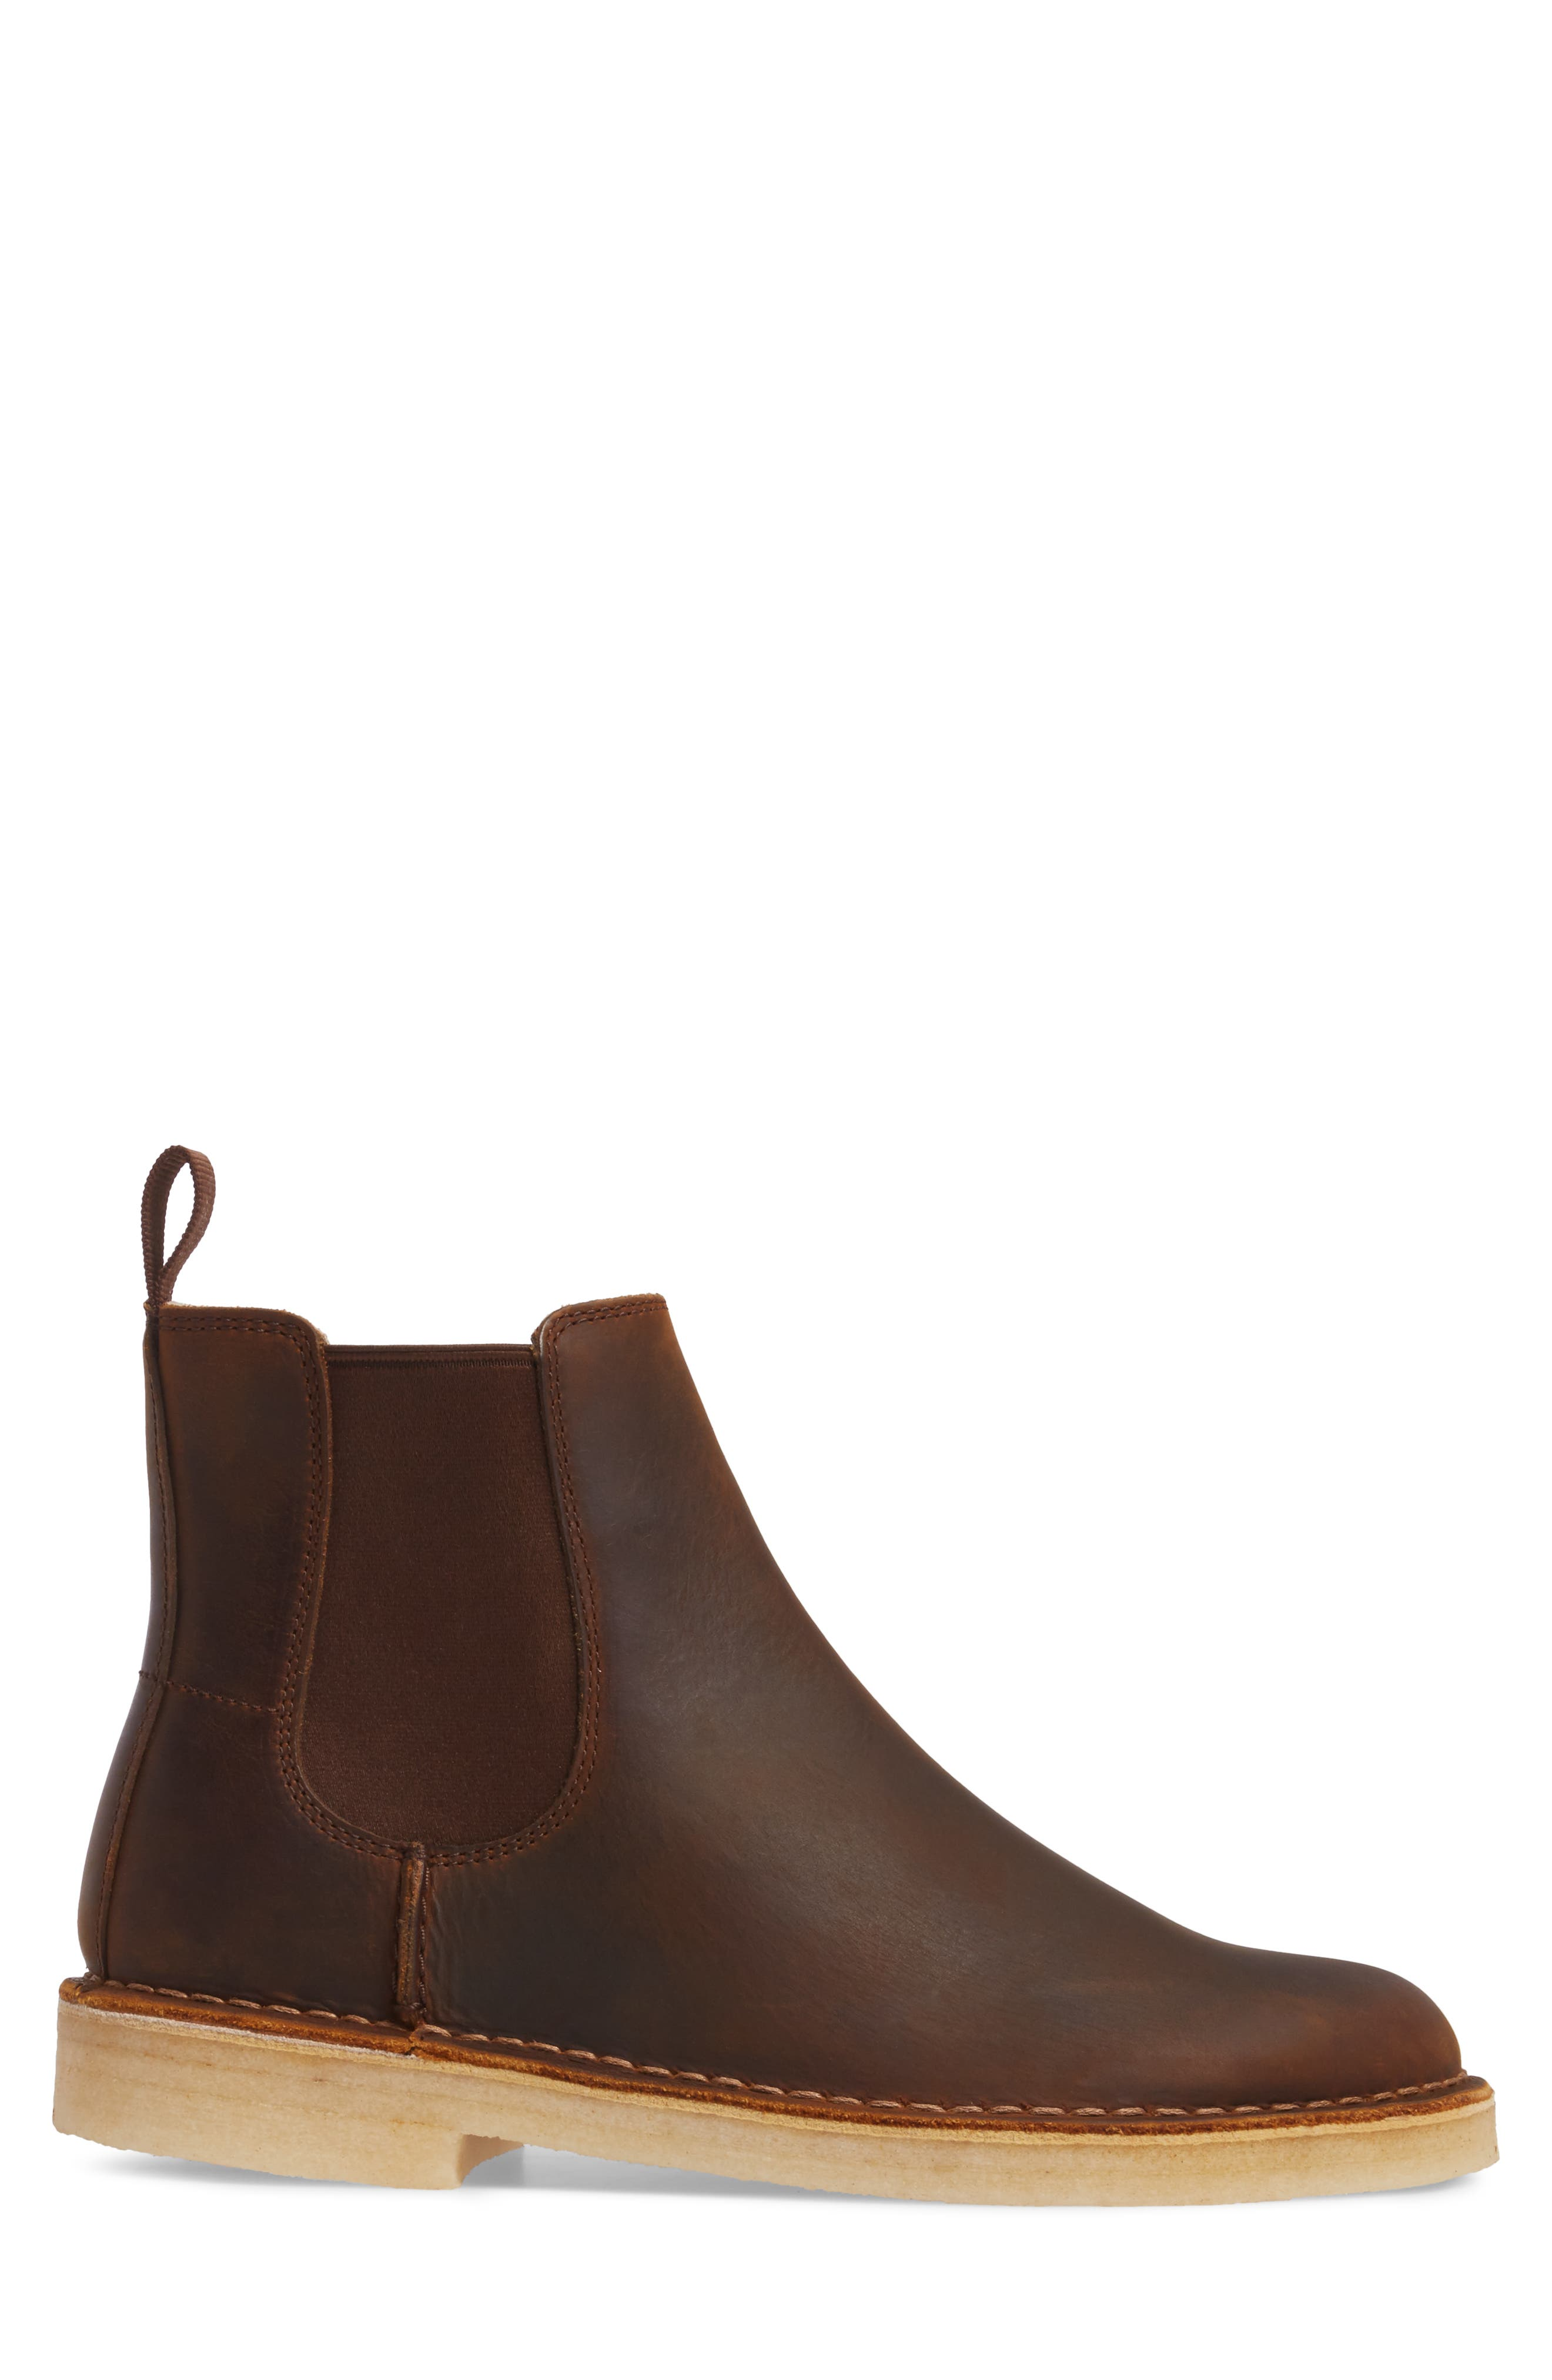 CLARKS<SUP>®</SUP>,                             Desert Peak Chelsea Boot,                             Alternate thumbnail 3, color,                             MEDIUM BROWN BEESWAX LEATHER